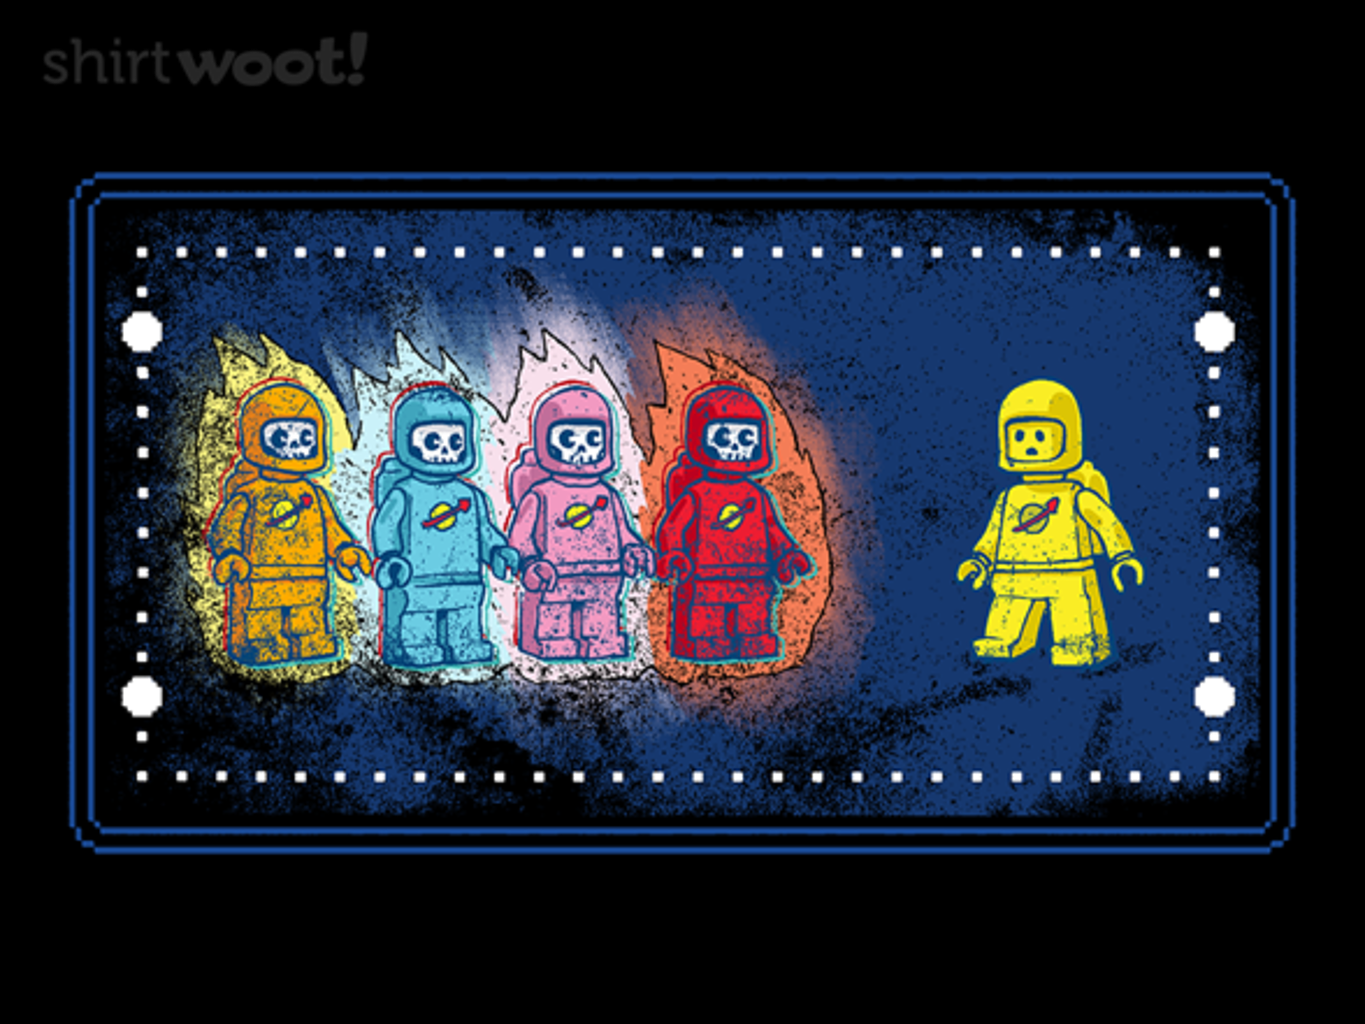 Woot!: Space Race